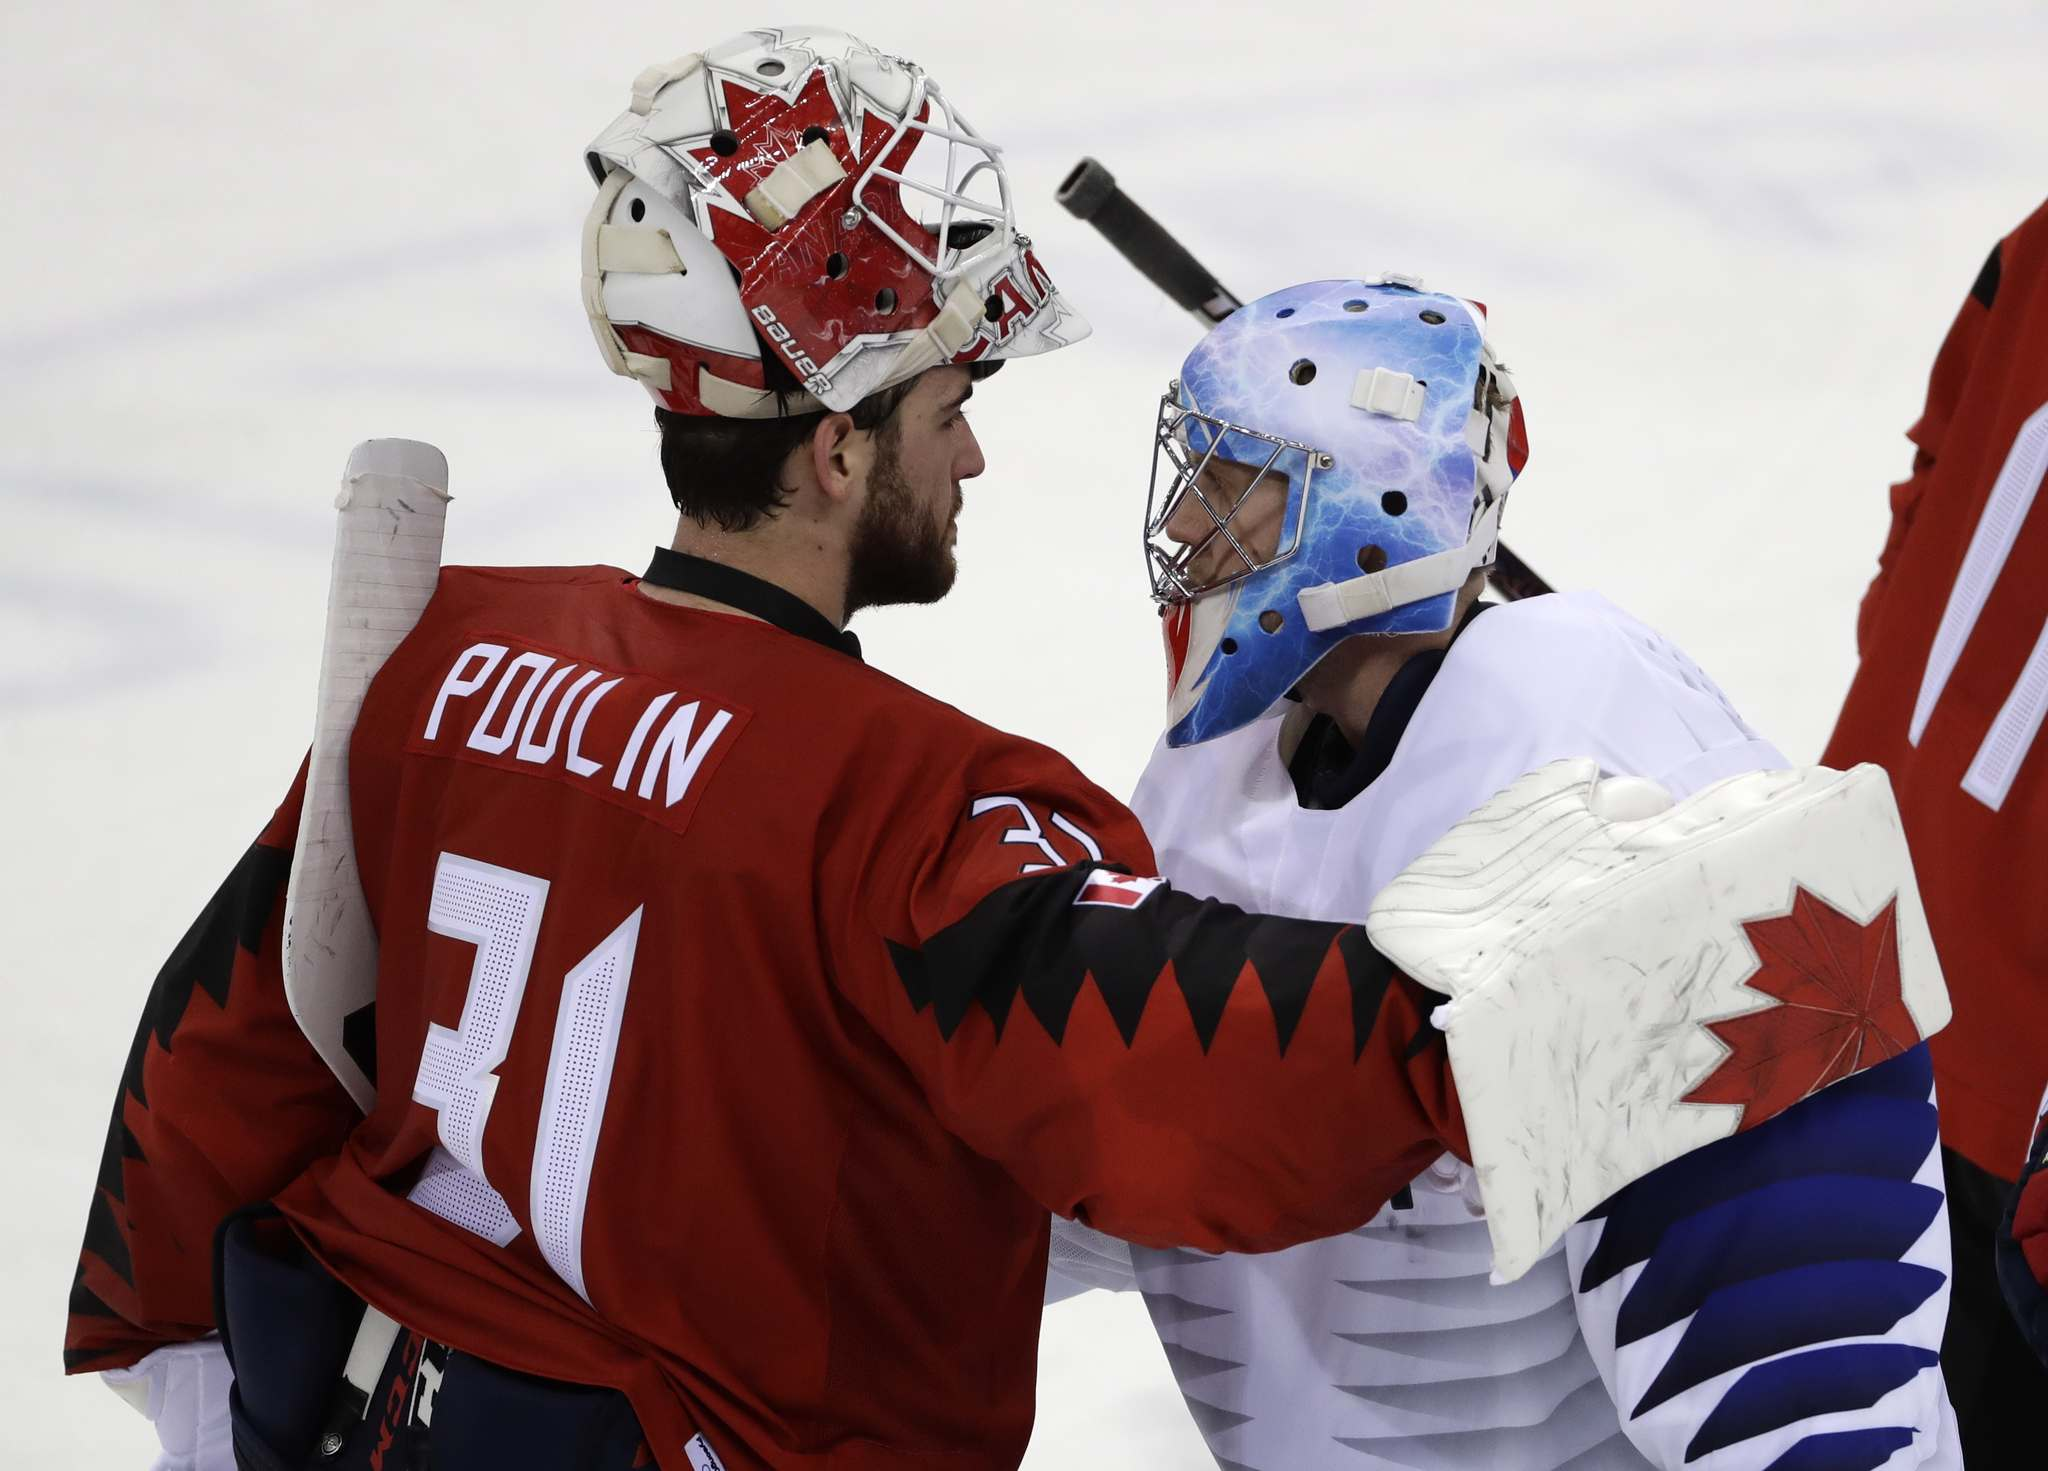 Matt Slocum / The Associated Press</p><p>Kevin Poulin (31), of Canada, greets Matt Dalton (1), of South Korea, after the preliminary round of the men's hockey game at the 2018 Winter Olympics in Gangneung, South Korea, Sunday, Feb. 18, 2018. Canada won 4-0.</p></p>